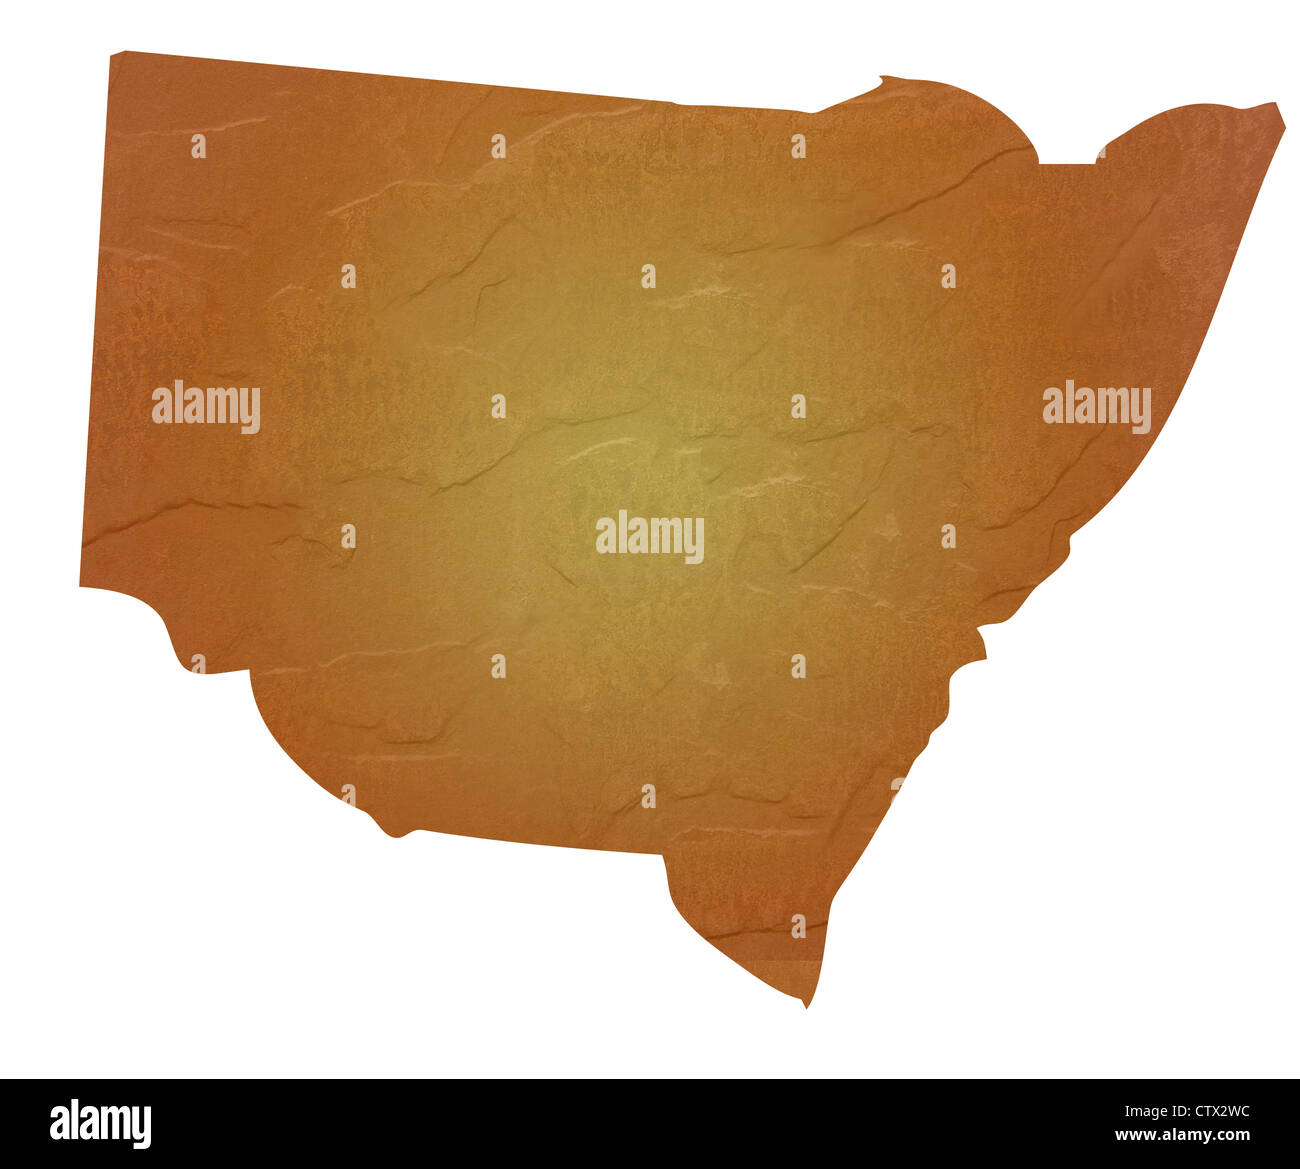 New South Wales, Australia map with brown rock or stone texture, isolated on white background with clipping path. - Stock Image